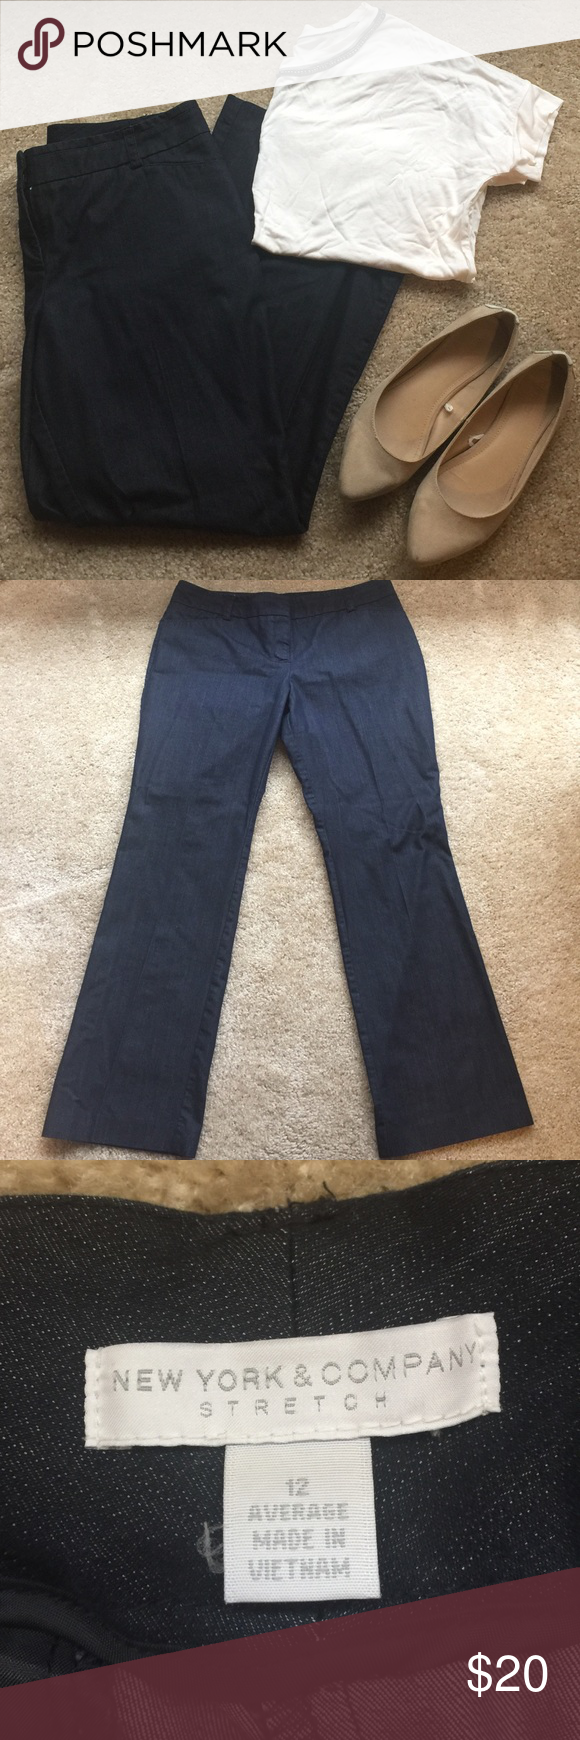 New York and Co Stretch Denim Dress Pants Size 12 These pants are a dress type pant, but in a lightweight, stretchy-ish denim fabric. It gives you stretch where you need it, and maintains a nice structured line at the bottom. Hard to describe! I only wore these pants twice. The color is like a darker wash denim. New York & Company Pants Straight Leg